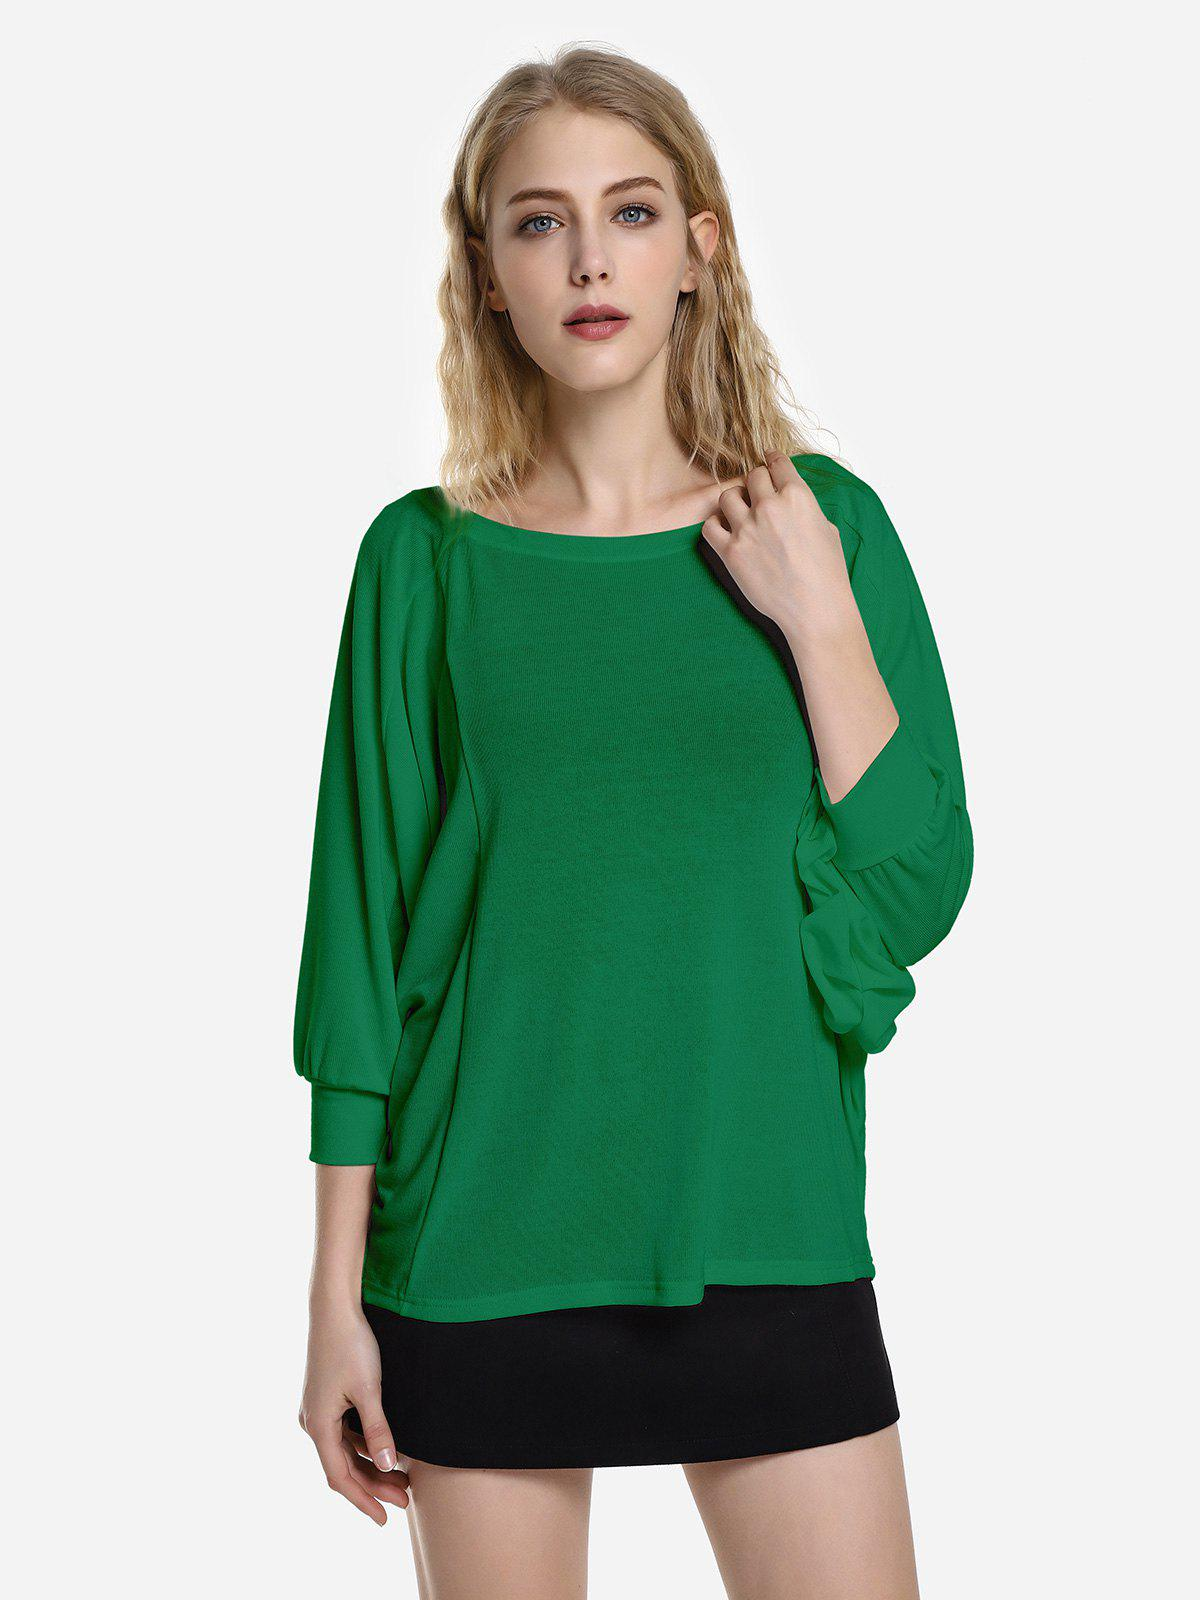 Fashion Dolman Sleeve Top